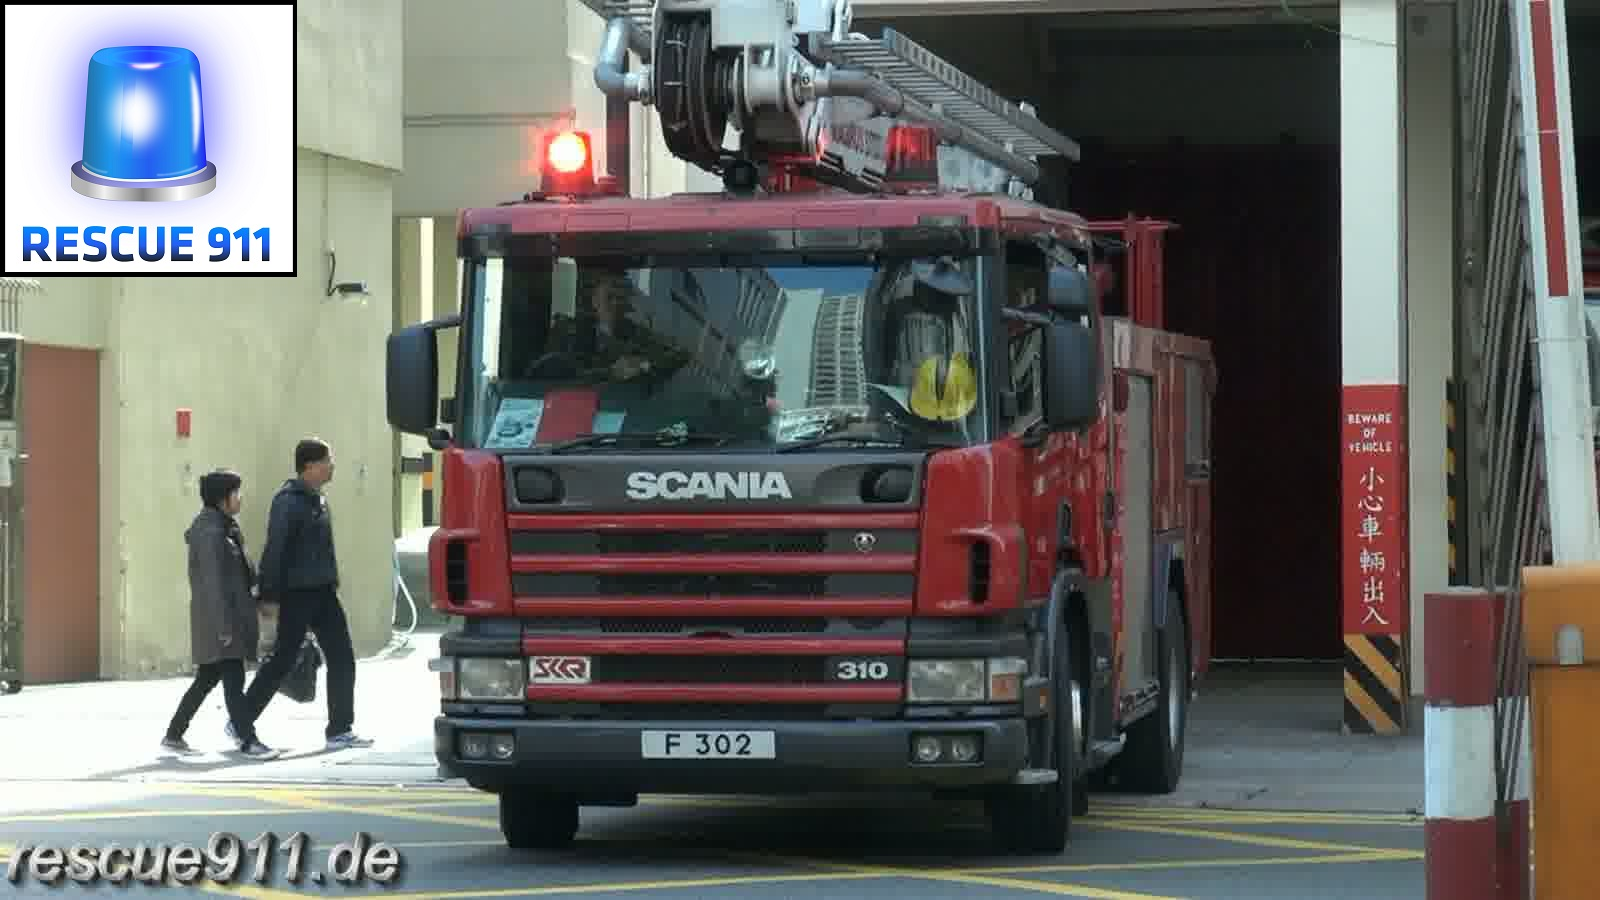 Light rescue unit + Hydraulic platform HKFSD Yau Ma Tei FS (collection) (stream)